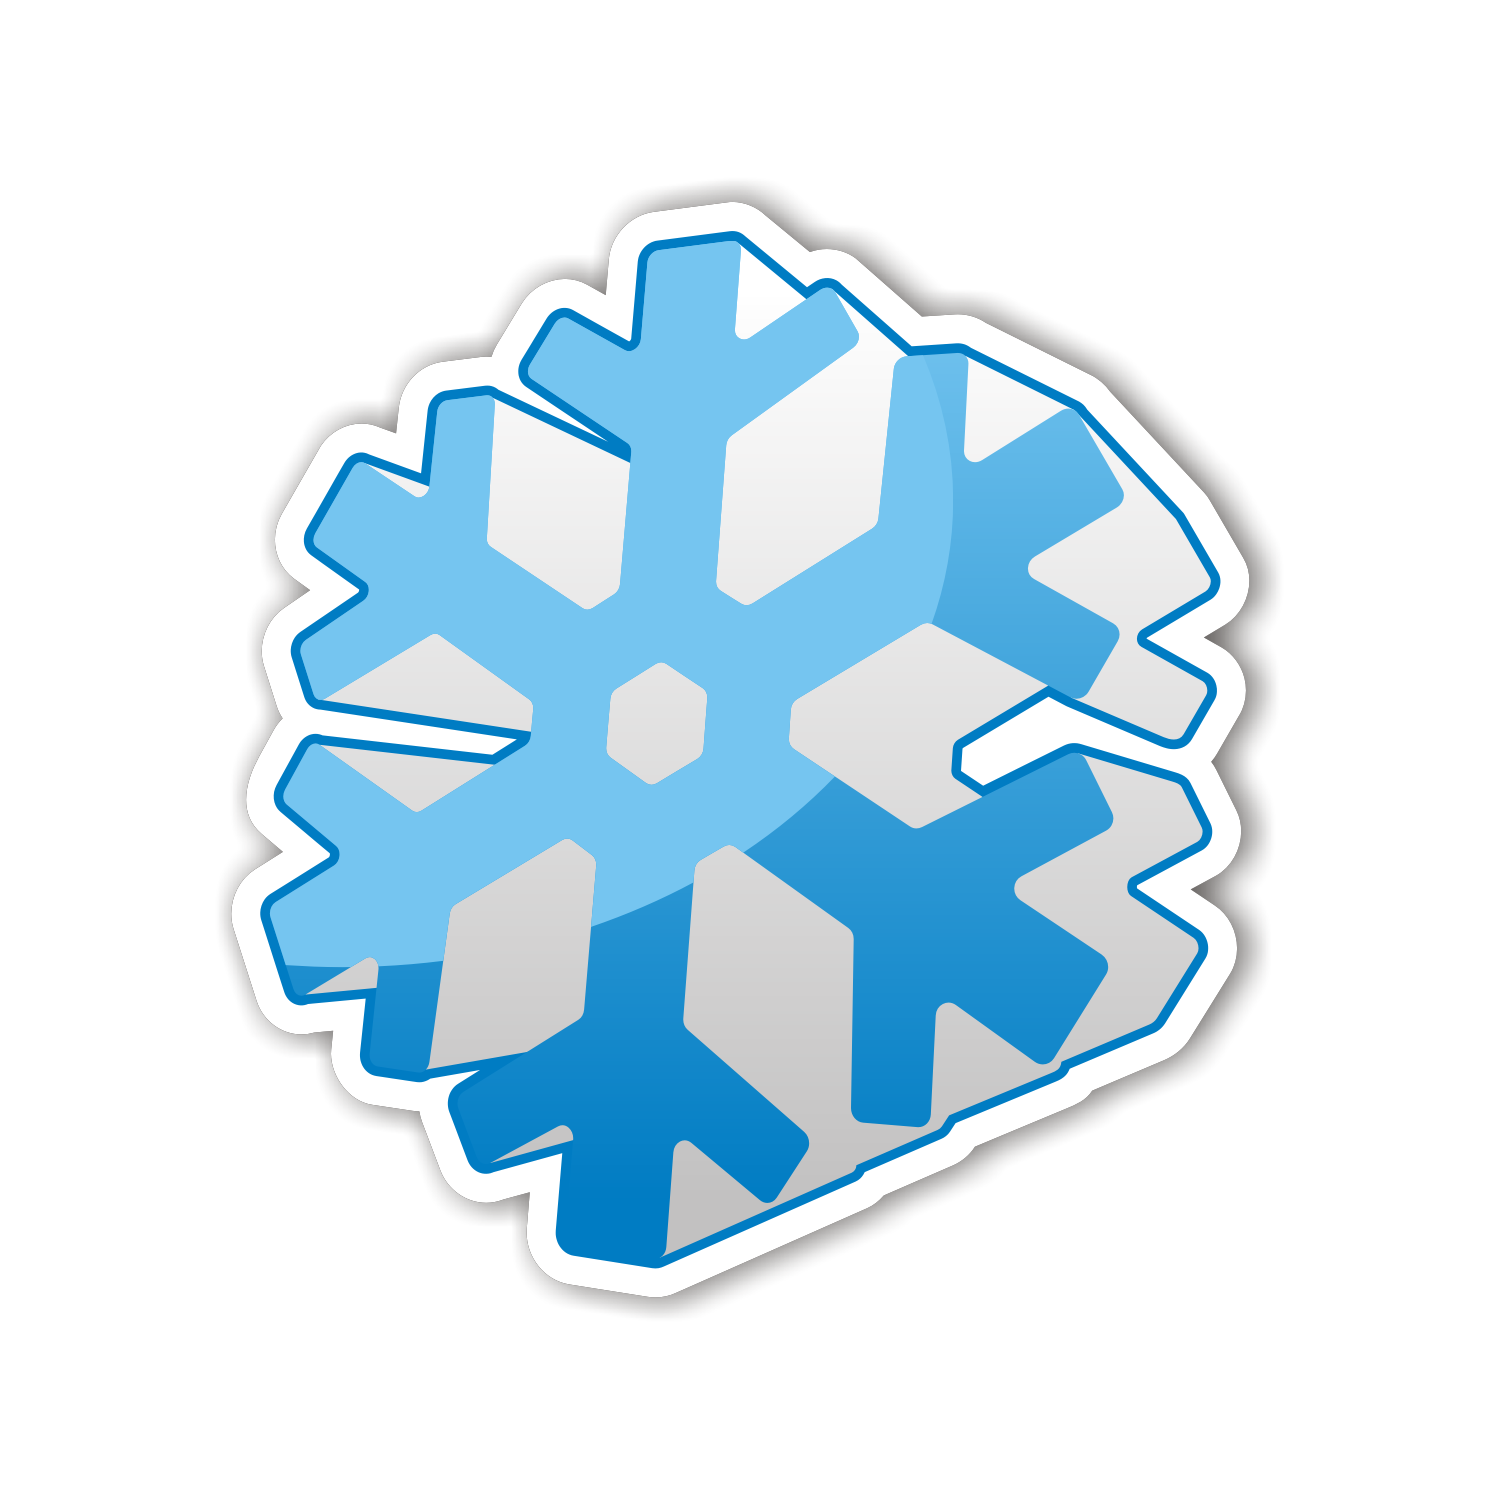 3d snowflake icon. Free vector illustration